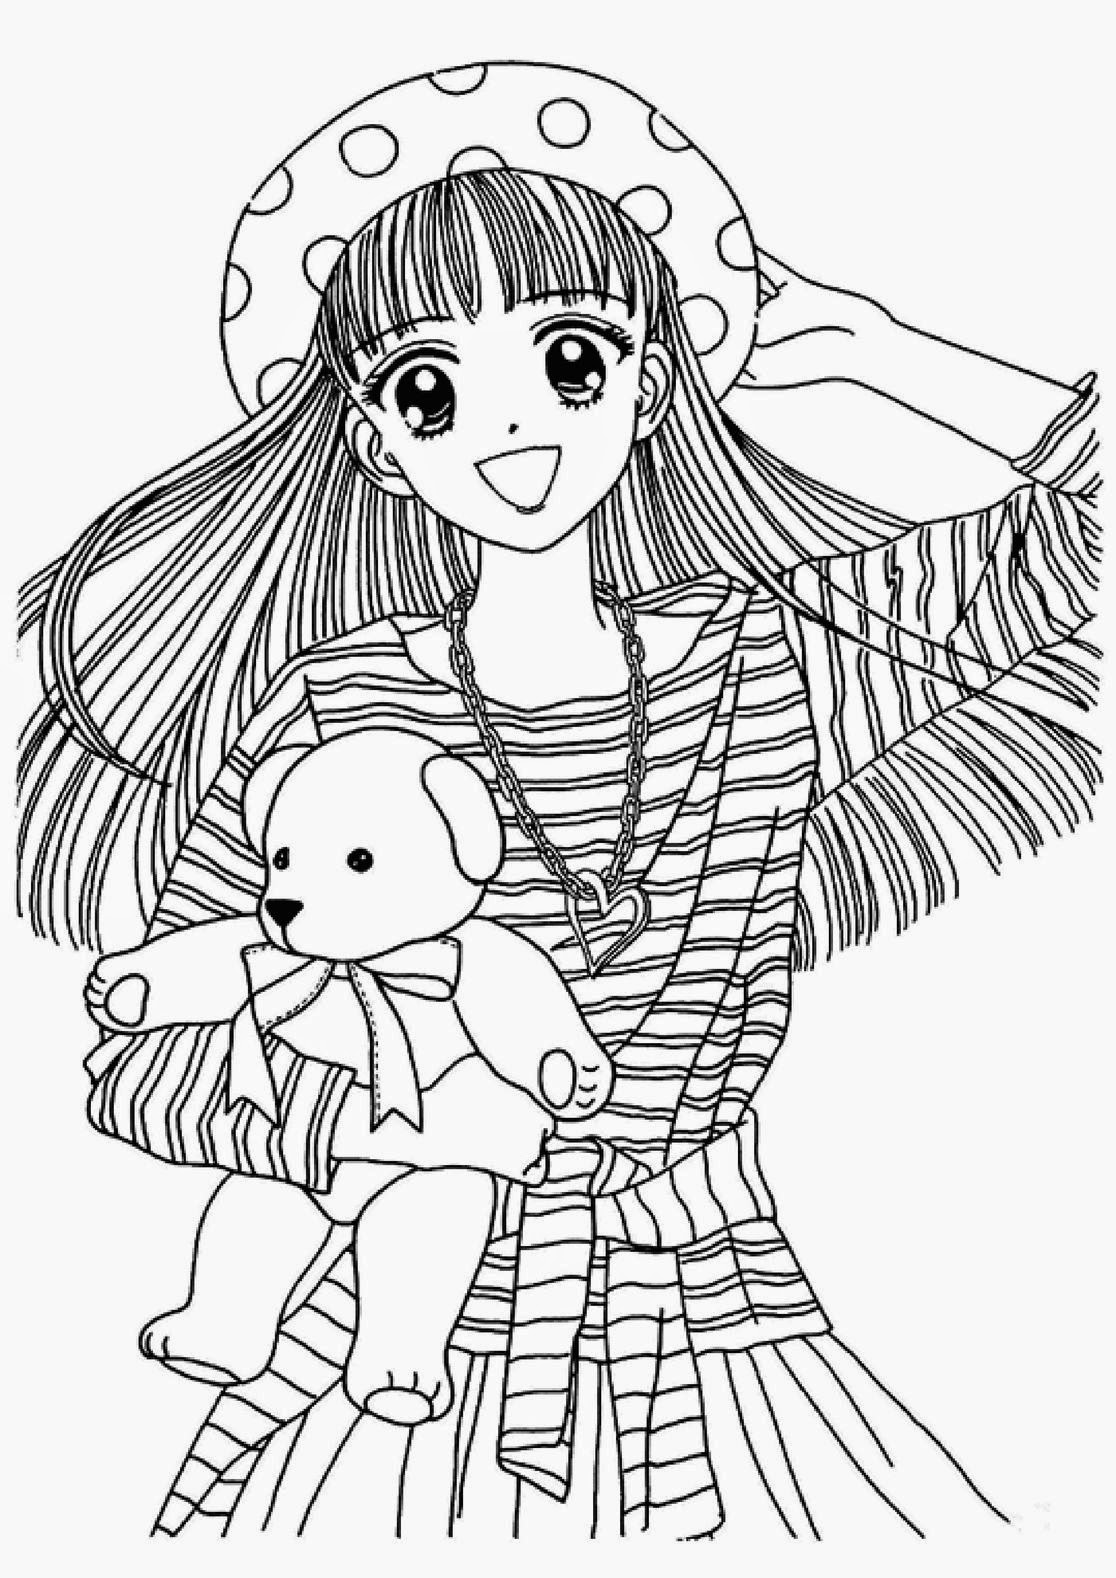 anime girl coloring pictures anime coloring pages best coloring pages for kids girl coloring pictures anime